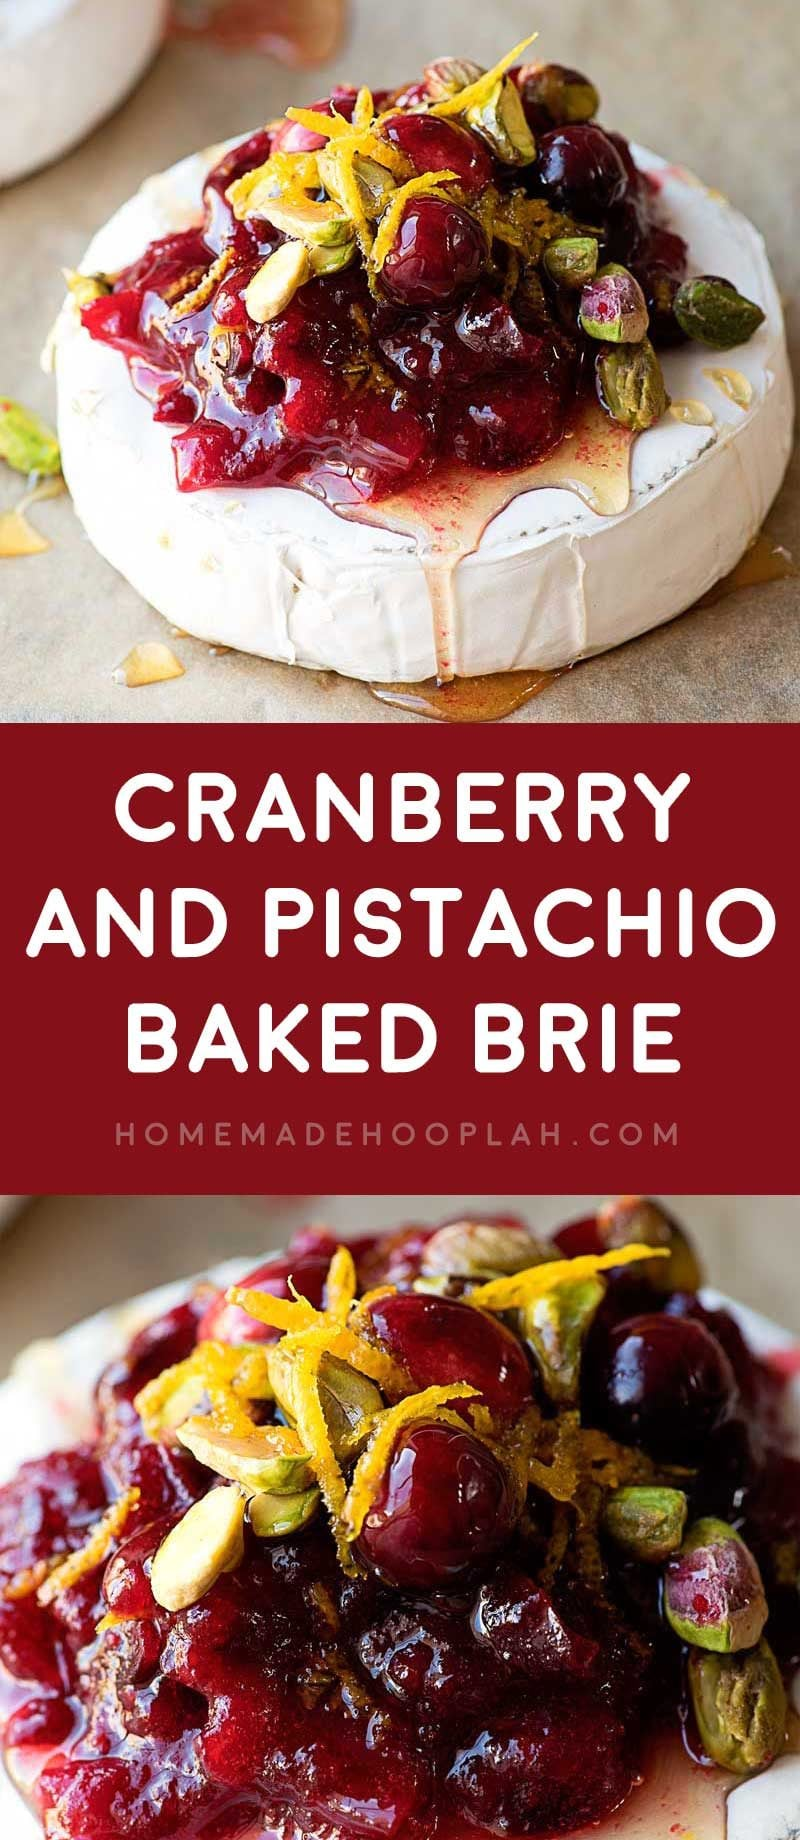 Cranberry and Pistachio Baked Brie! Warm baked brie with cranberry sauce, pistachios, orange zest, and Truvia Nectar. Serve with toasted bread or crackers for a festive cranberry appetizer! #UseNectar @Truvia #sponsored | HomemadeHooplah.com